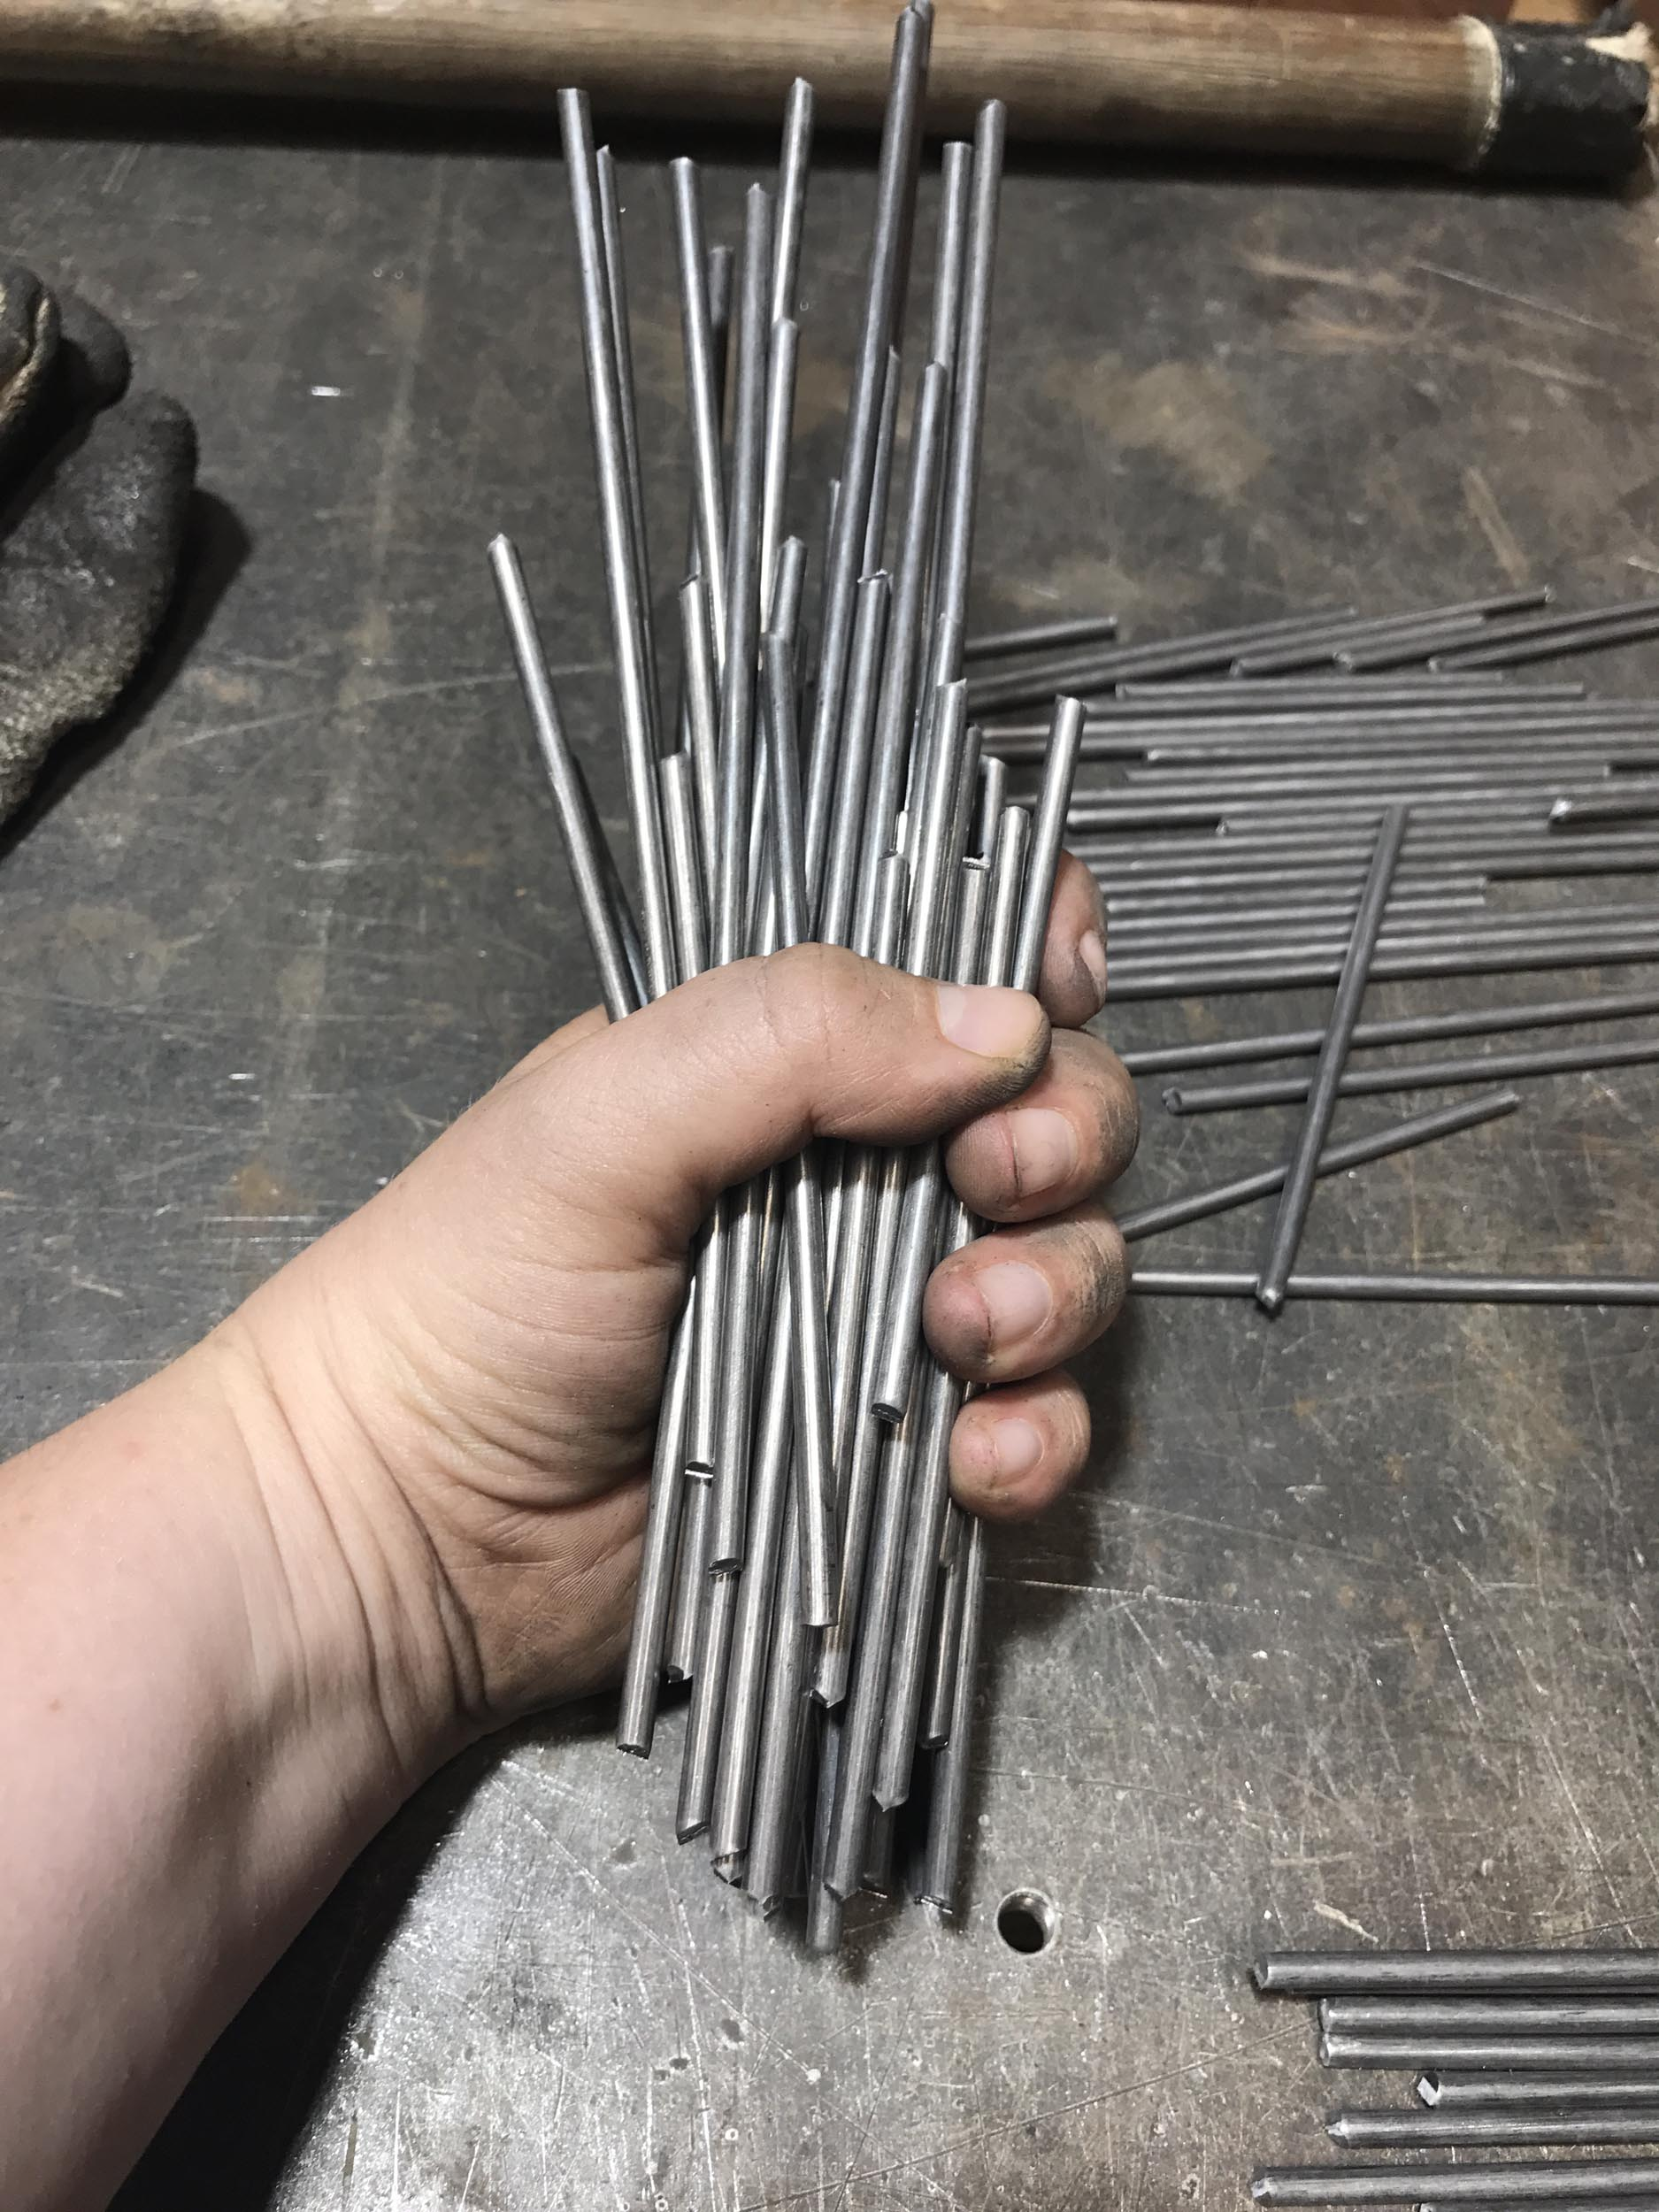 Many sticks to cut = very dirty hands.